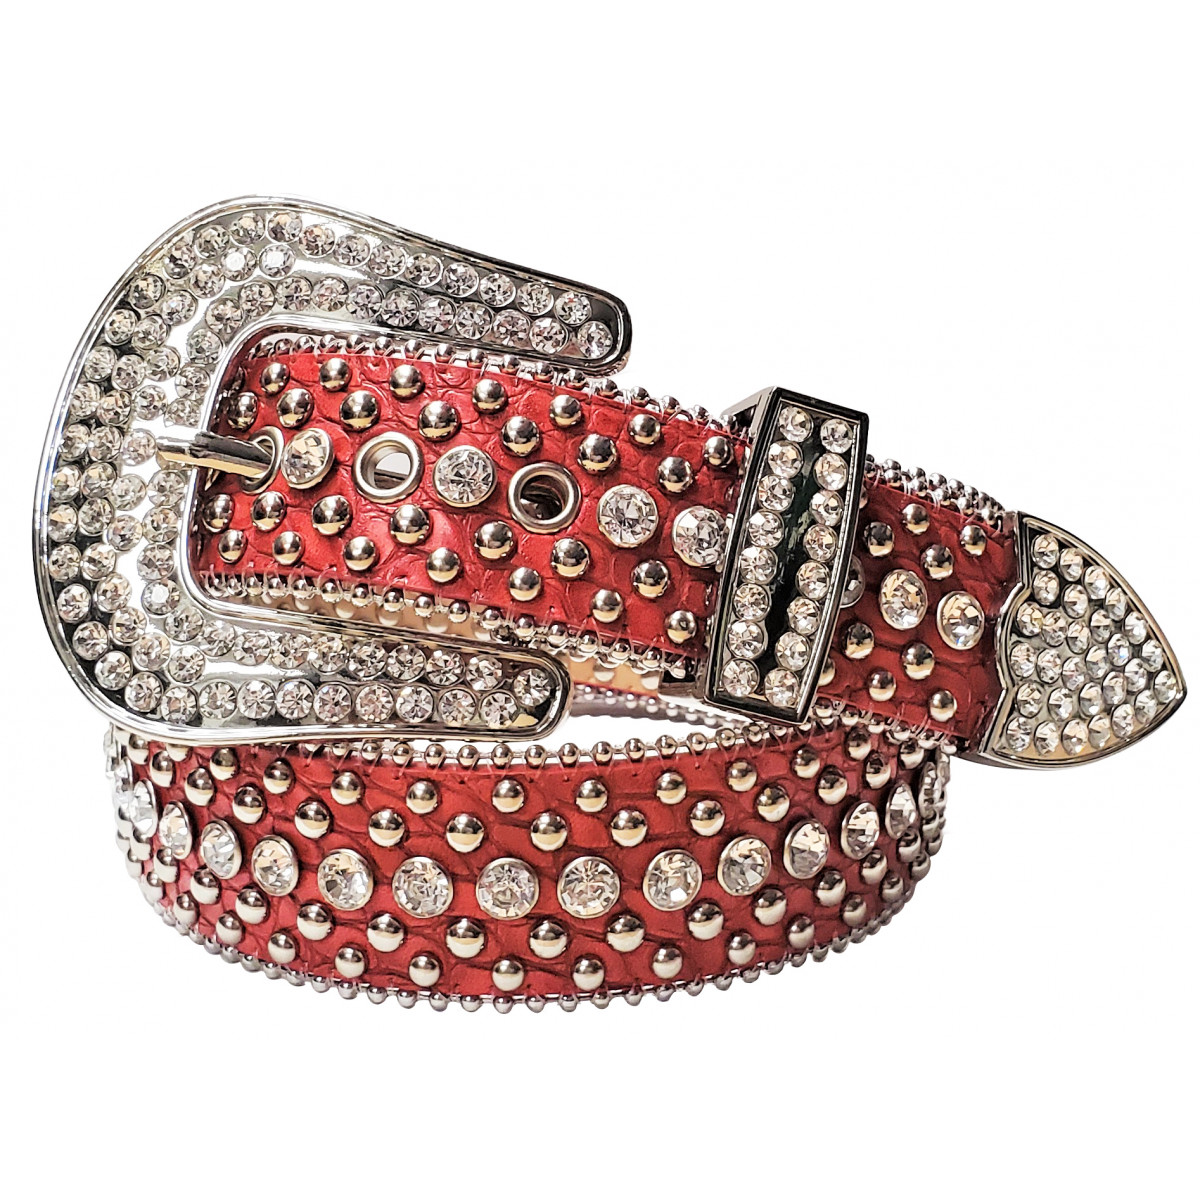 Rhinestone Belt - Cherry Red Belt with Silver Studs and Clear Rhinestones